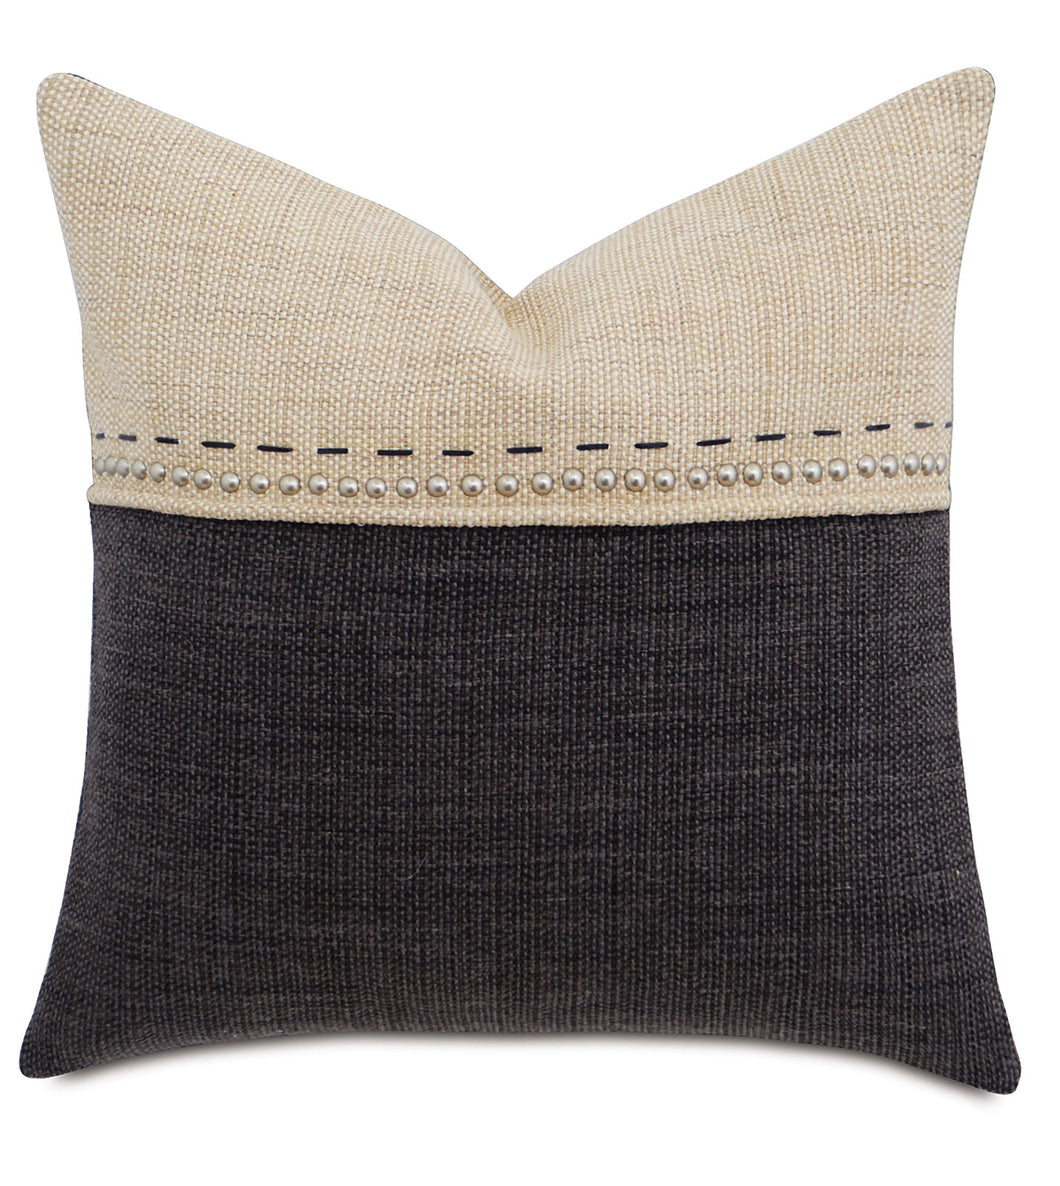 Charcoal and Champagne Studded  Mountain Resort Throw Pillow Hand Stitched 22